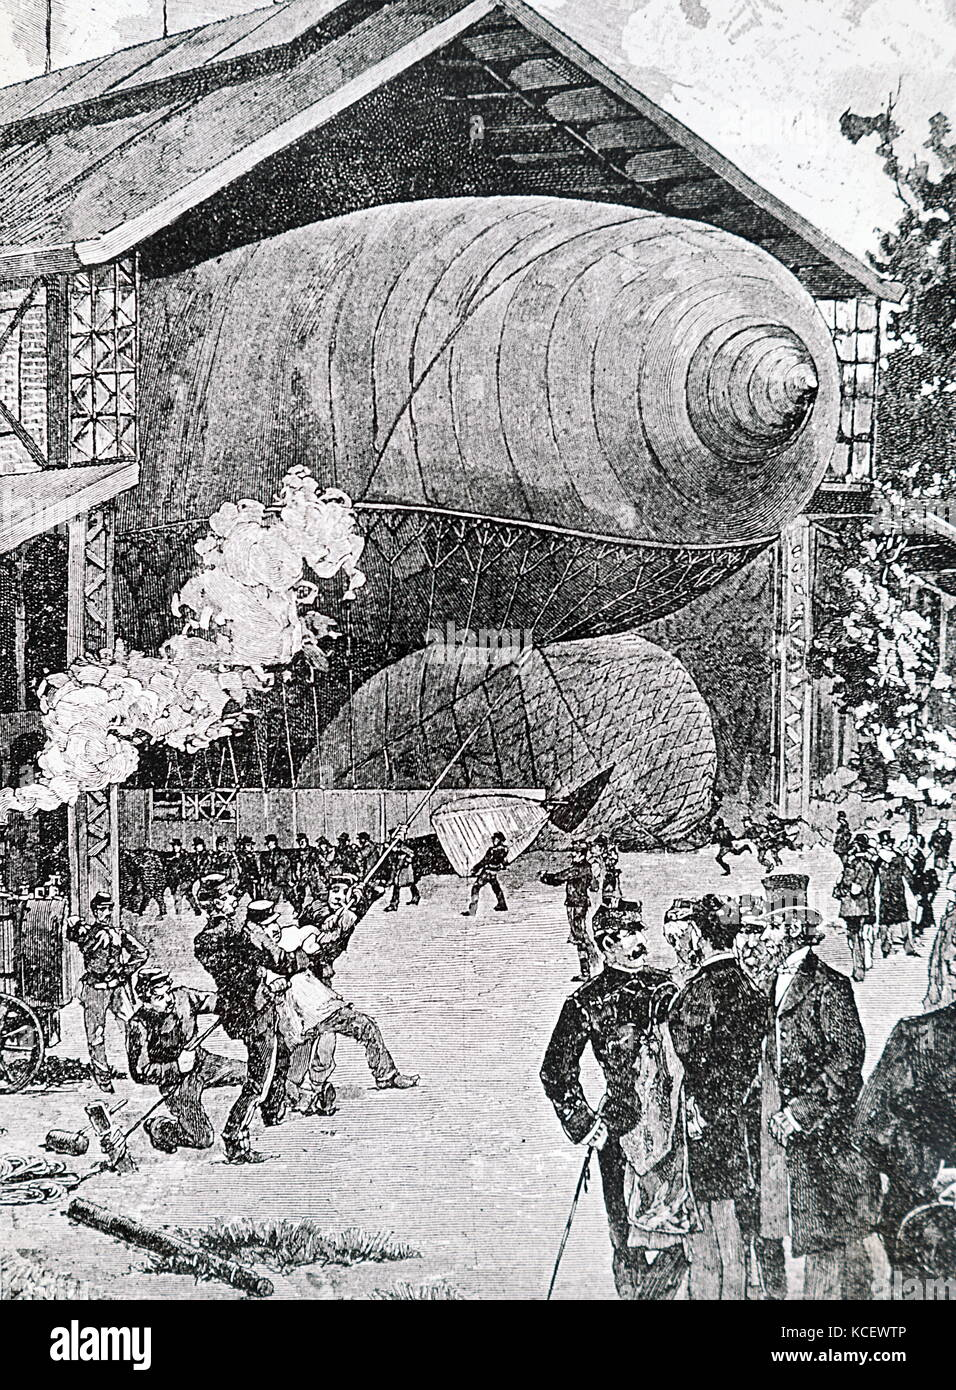 Engraving depicting the airship 'La France' in its hanger. Dated 20th Century - Stock Image